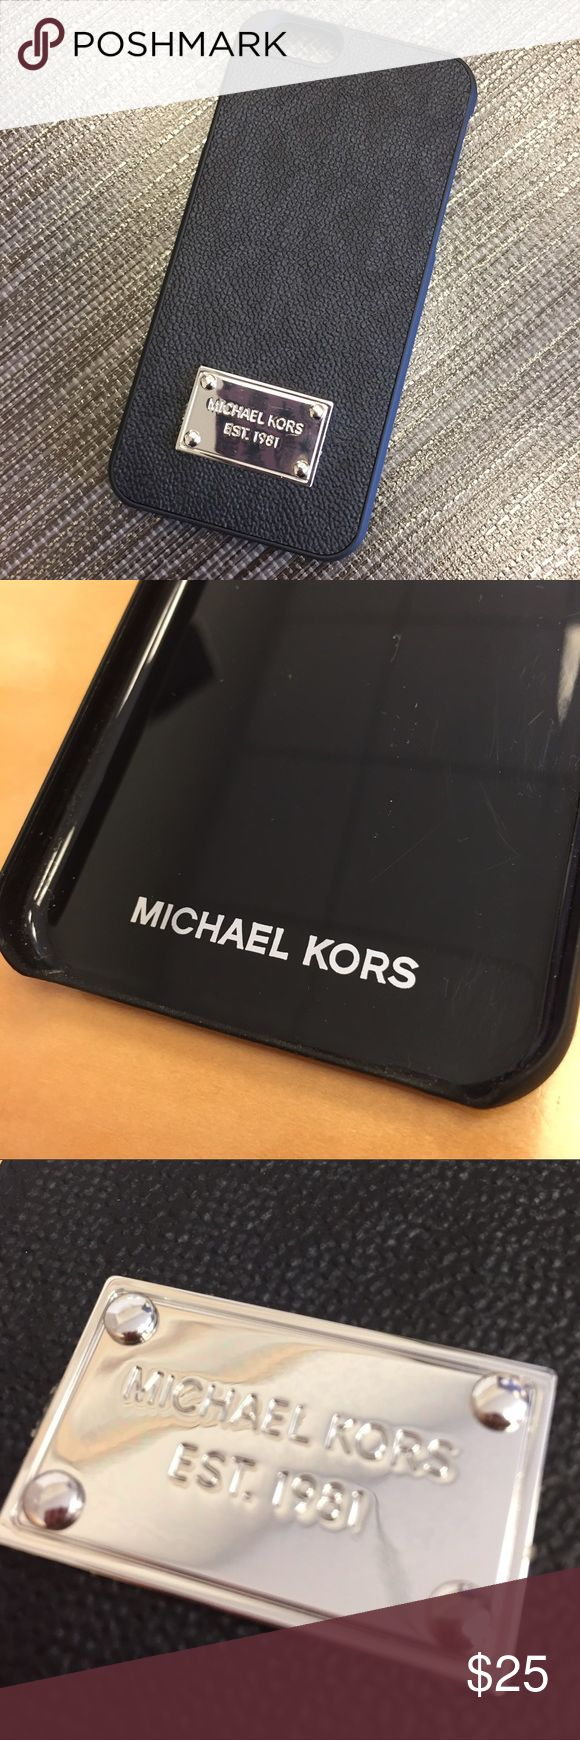 "MICHAEL by Michael Kors iPhone 6 case cover Authentic MICHAEL Michael Kors iPhone 6 case/cover. Black Saffiano Leather, plastic trim, silver color logo plate on front. 5"" x 2.5"". Never used. Price is fairly FIRM because of fees but always open to bundling for discounts. 😊 MICHAEL Michael Kors Accessories Phone Cases"